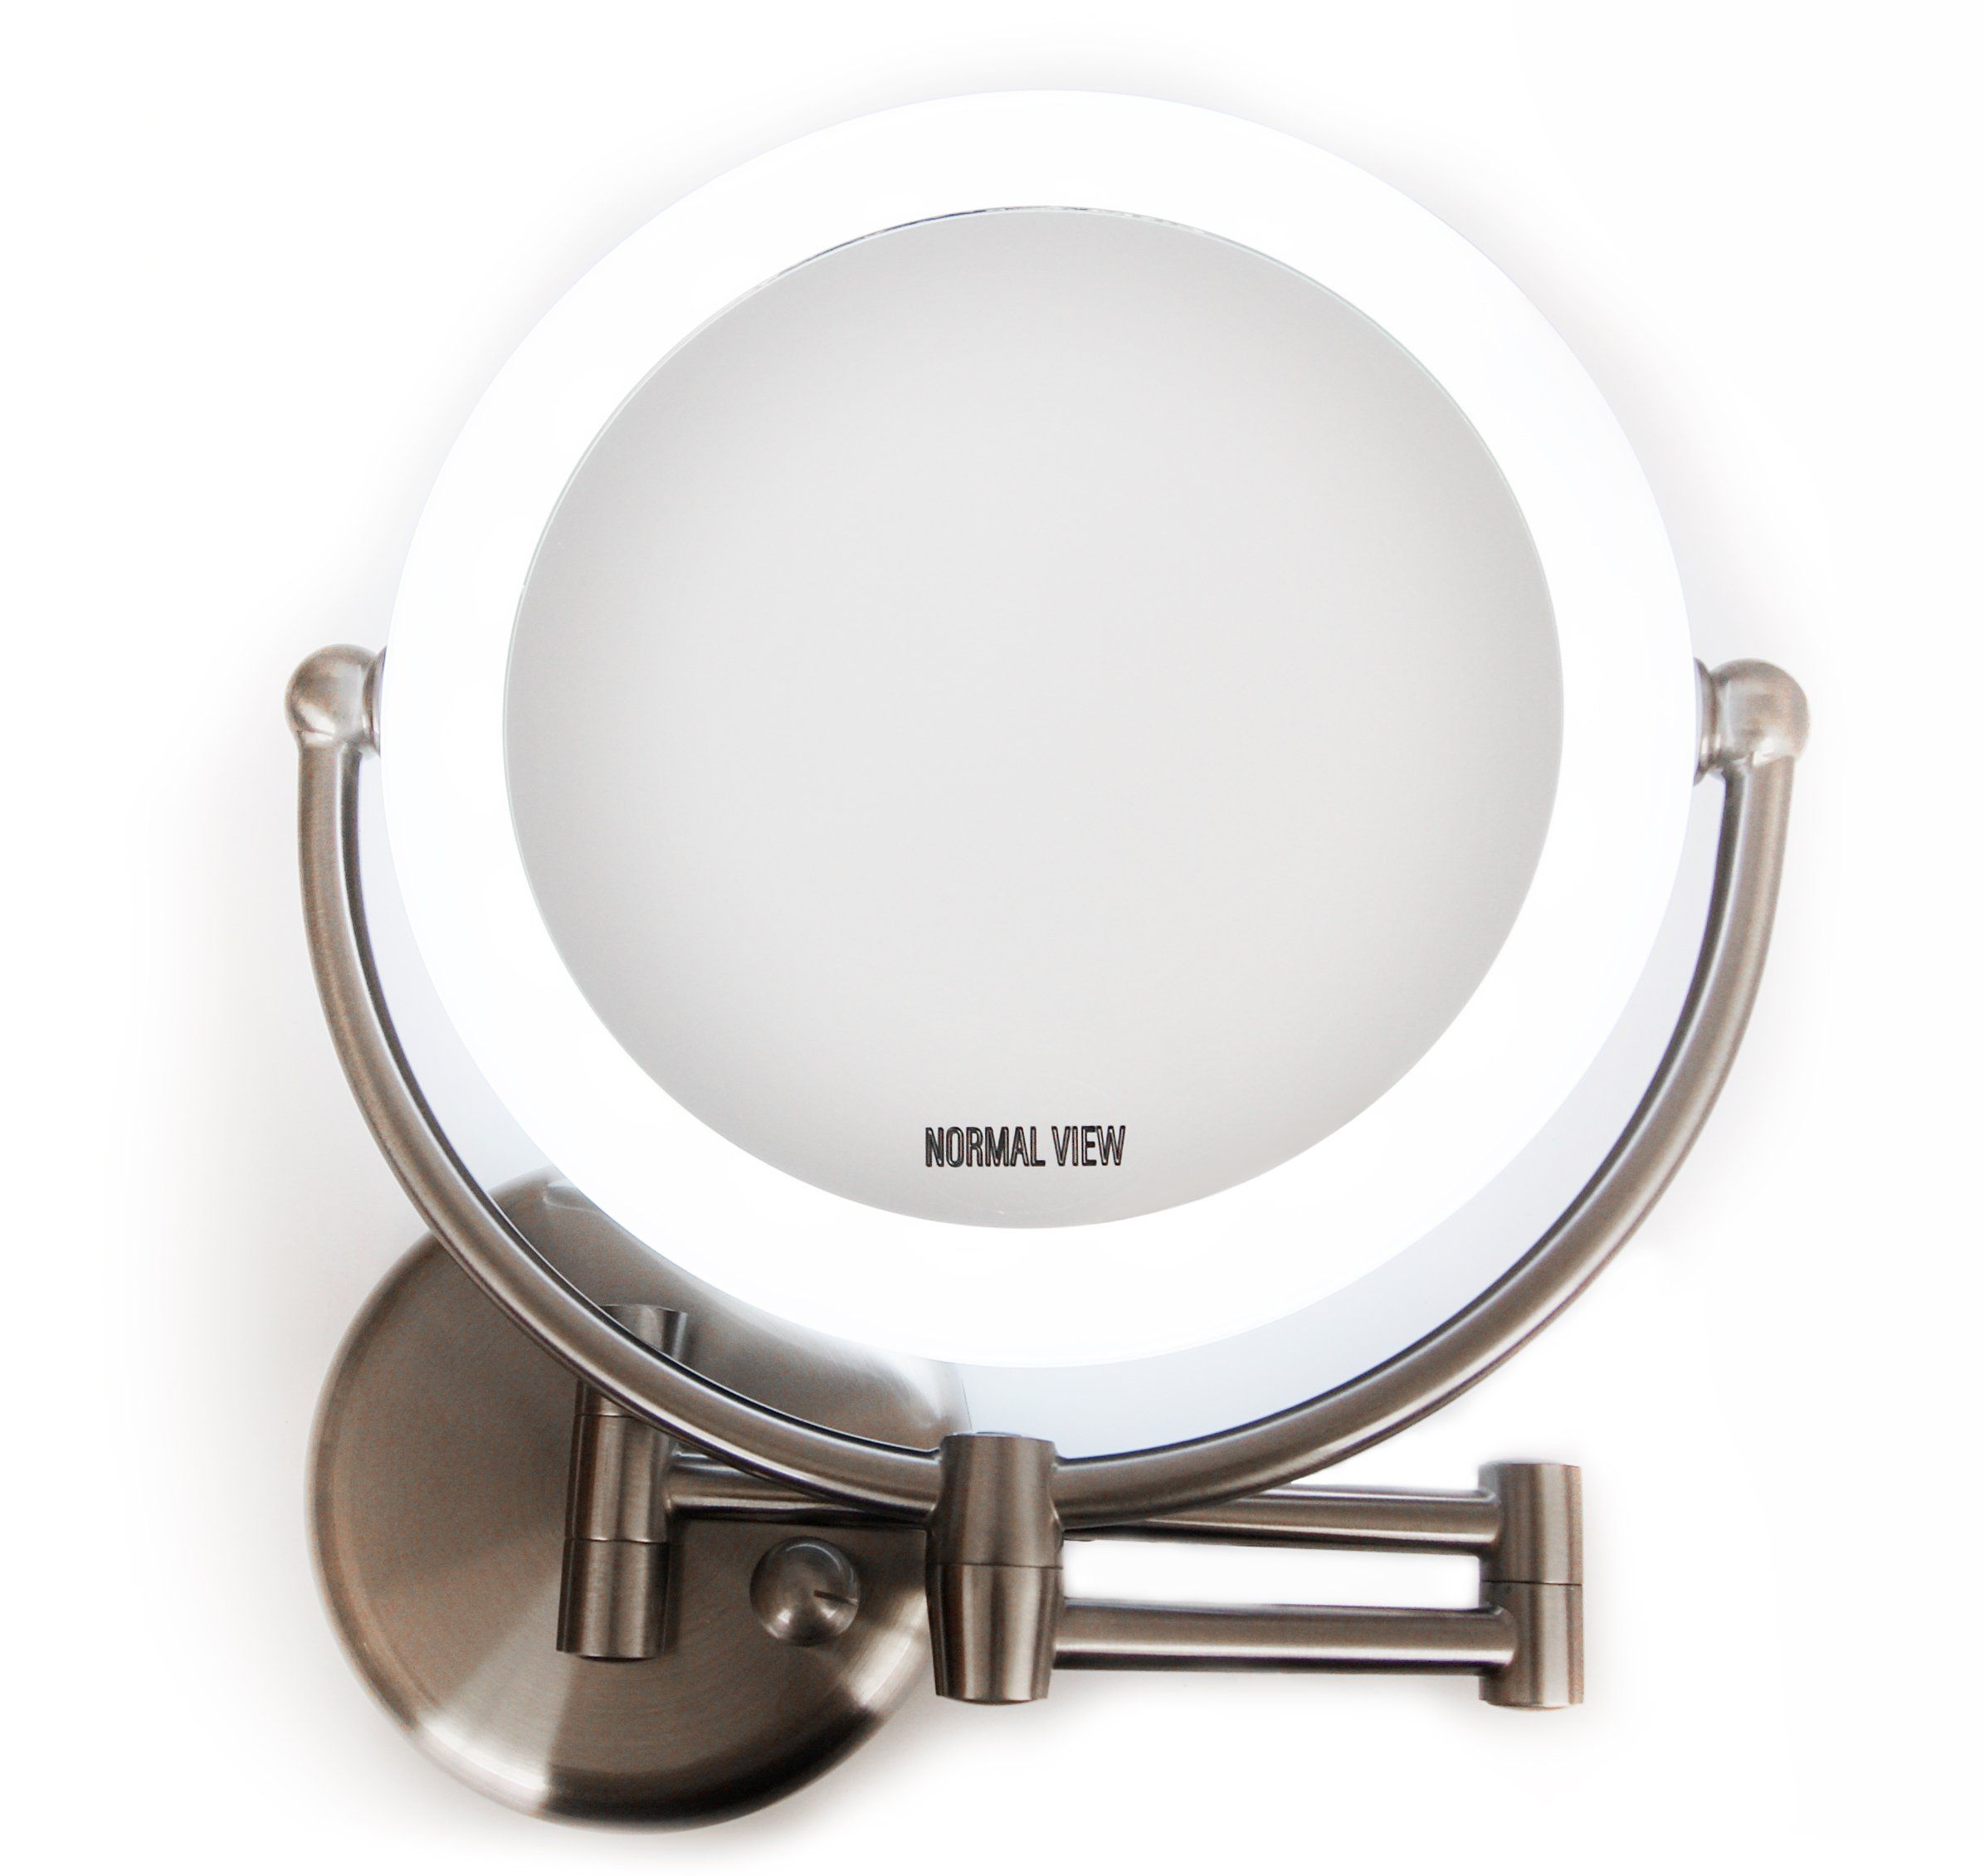 Wall Mount Led Lighted Makeup Mirror Ac Adaptor 10x 1x Magnification Satin Nickel Finish 8 6d With Images Wall Mounted Makeup Mirror Makeup Mirror Magnification Mirror